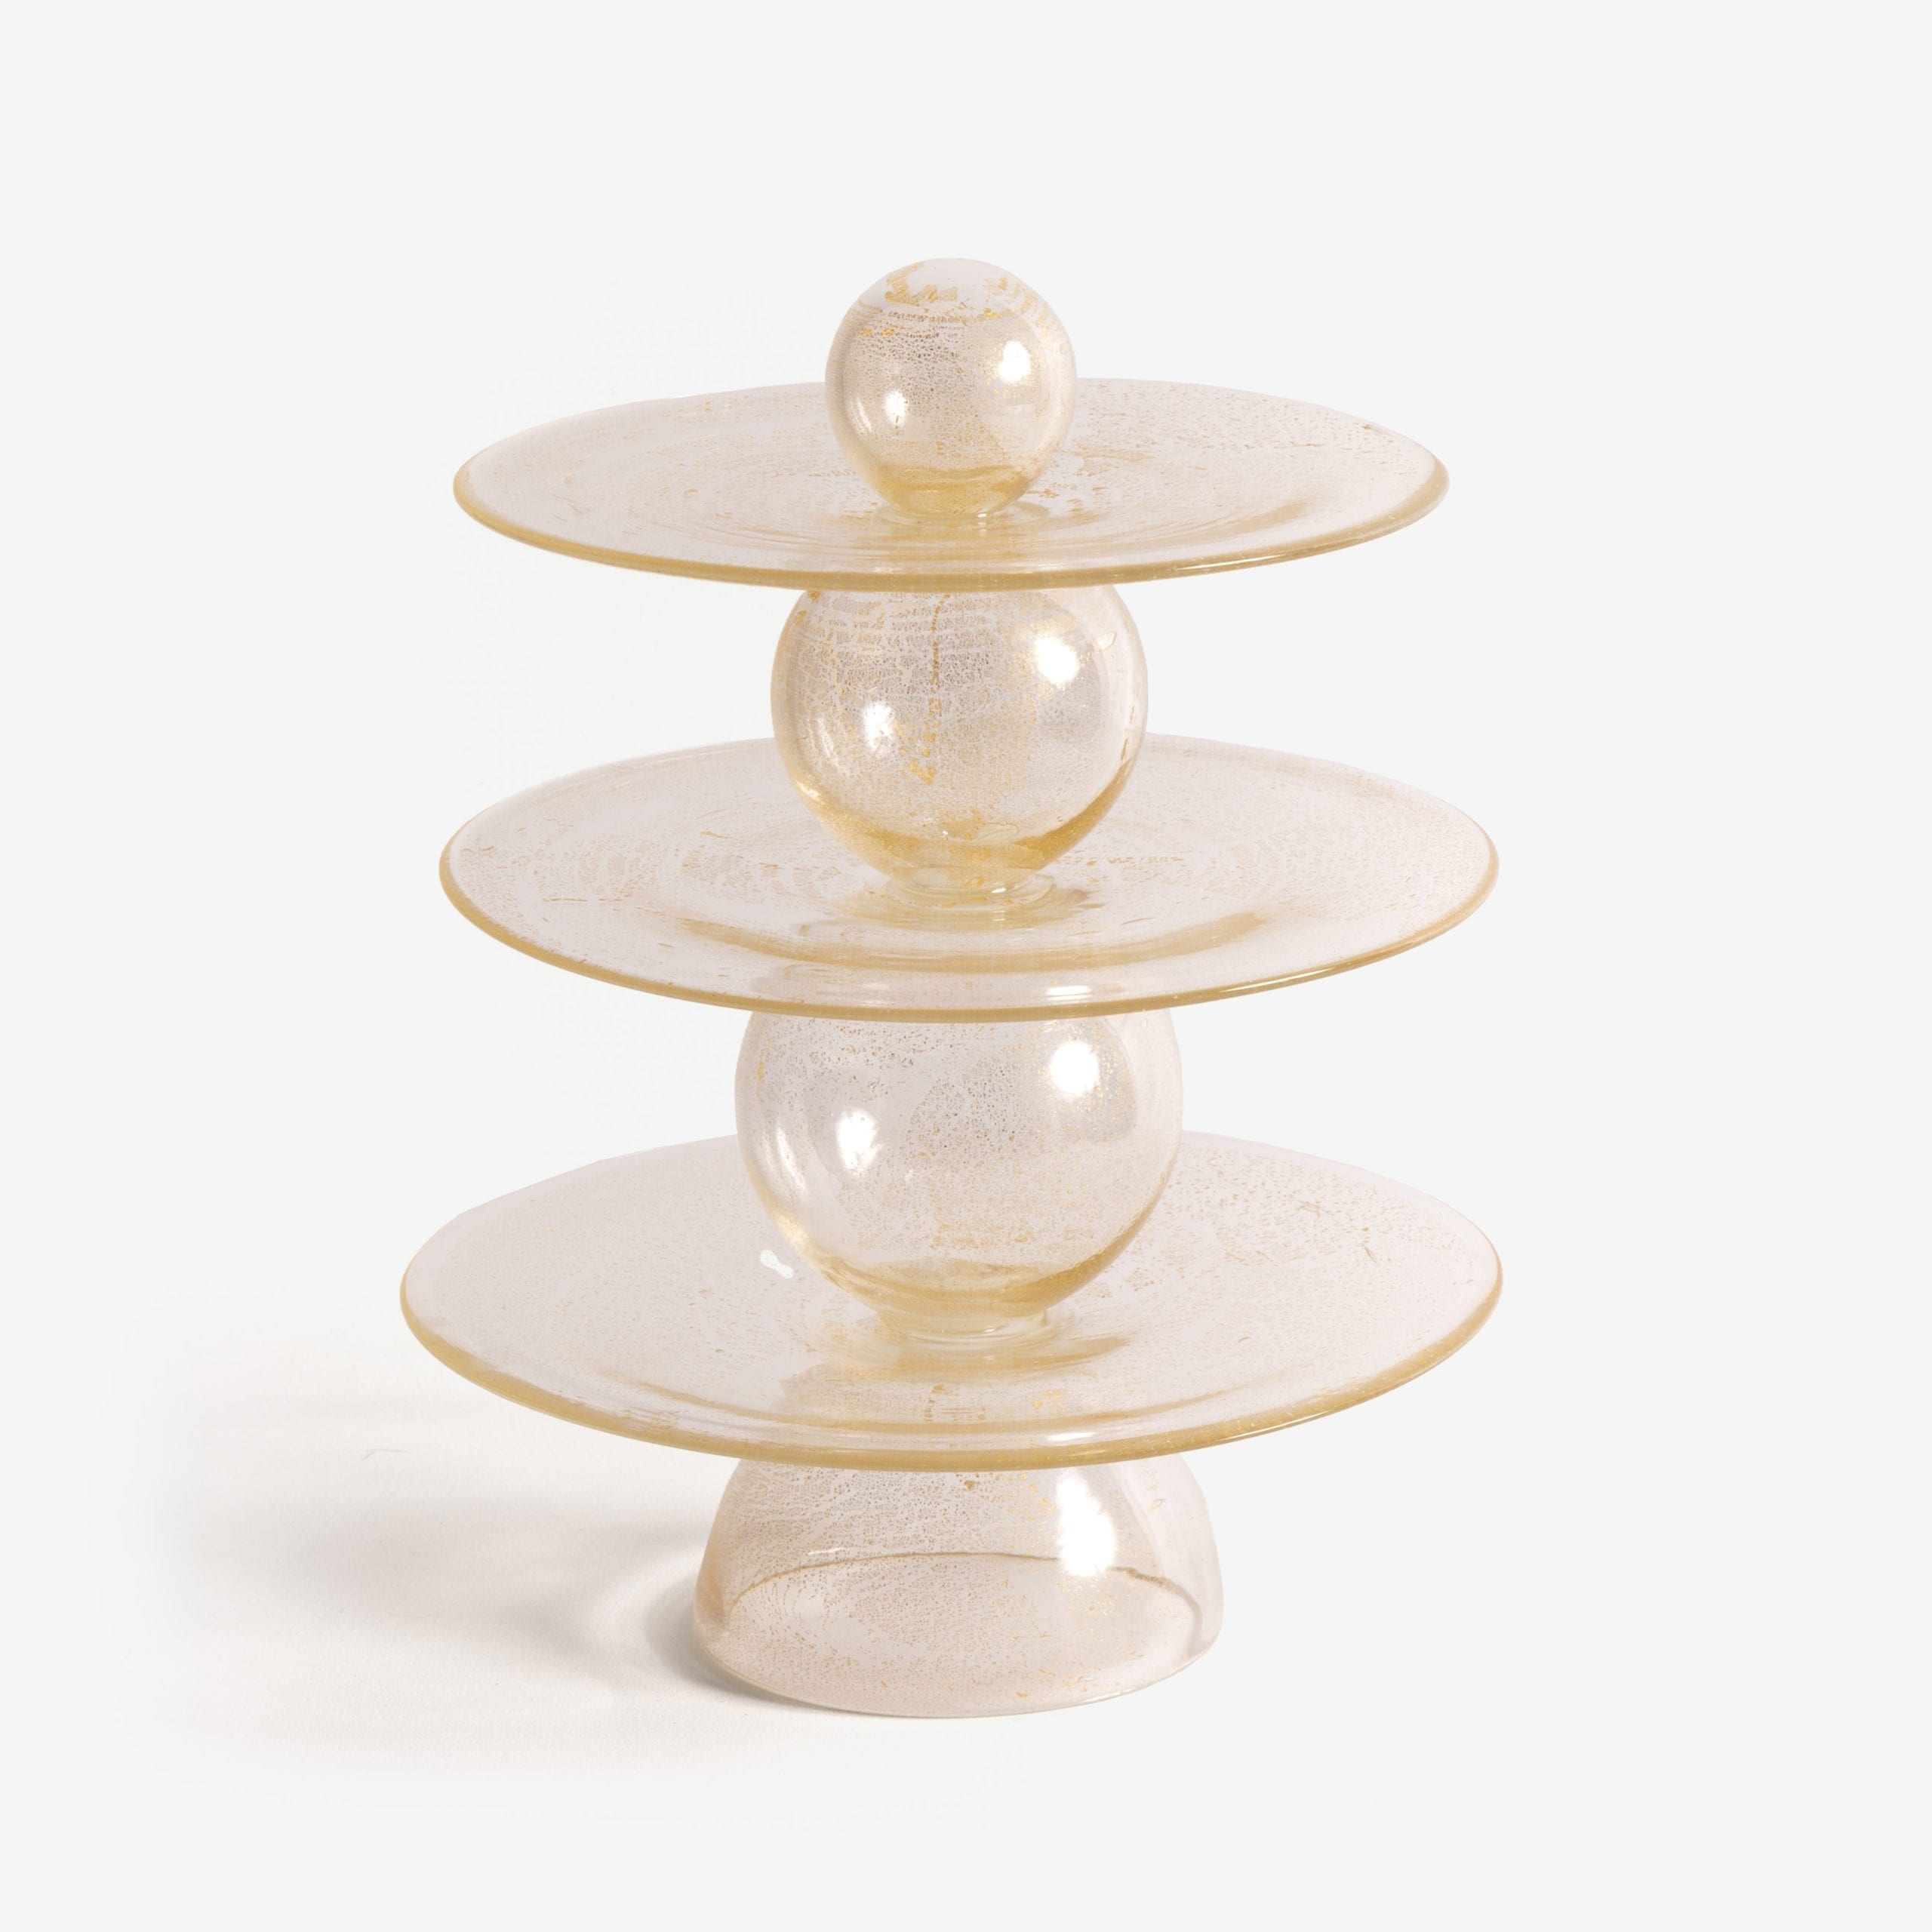 The_Invisible_Collection_Creations_Dragonfly_Particules_Elementary_Cake_Stand_2